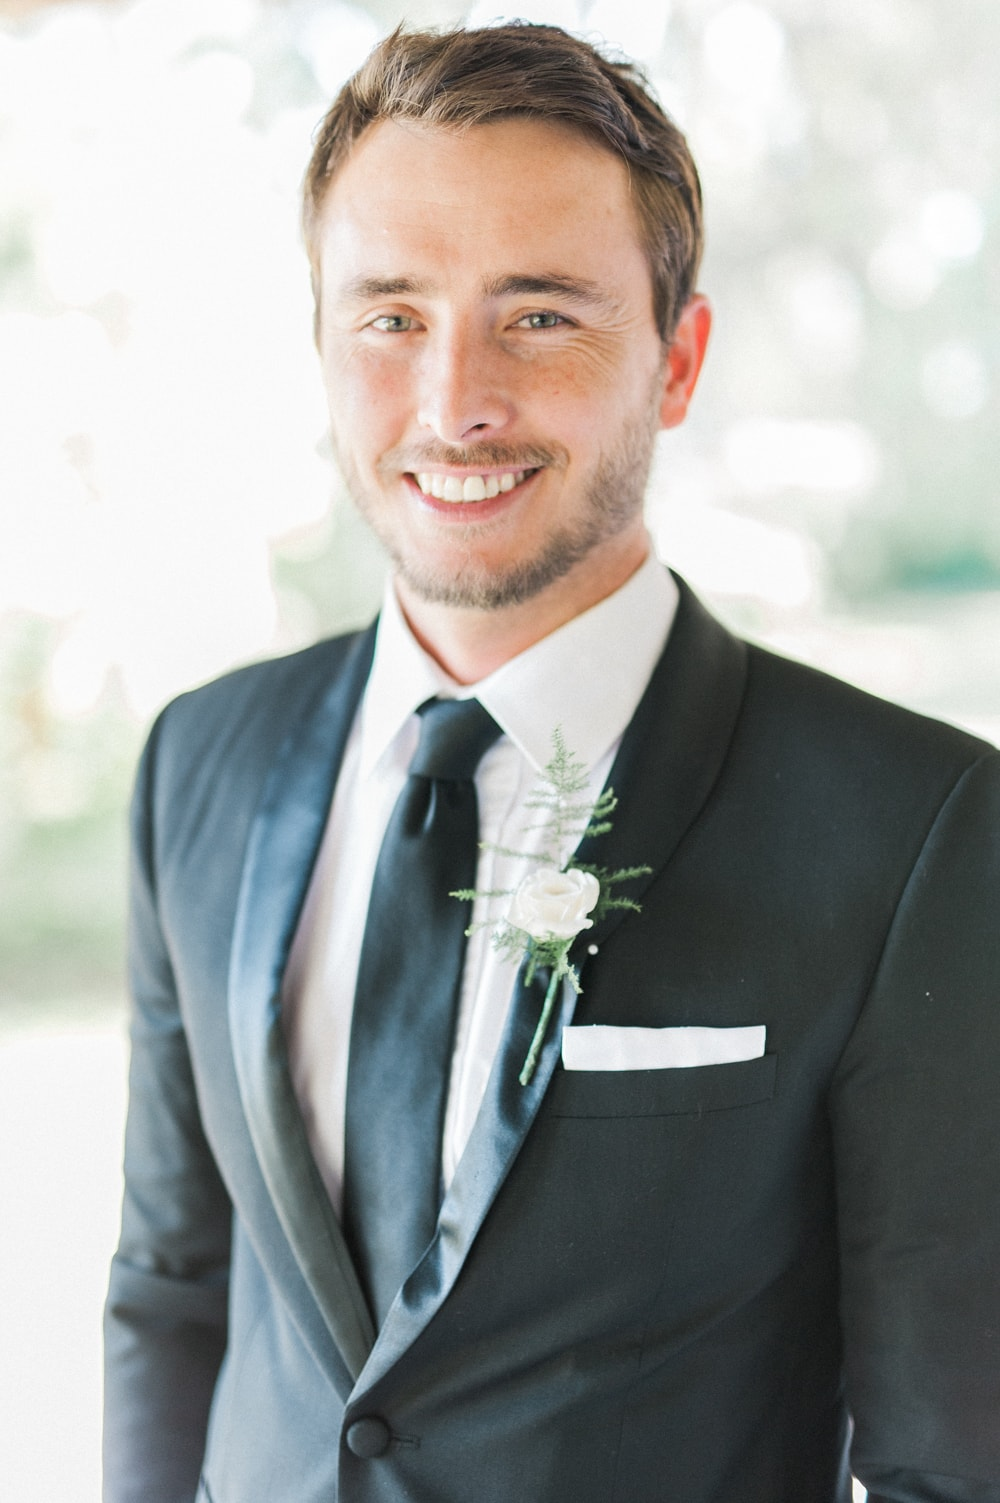 Groom in Classic Black Suit & Tie | Image: Bright Girl Photography